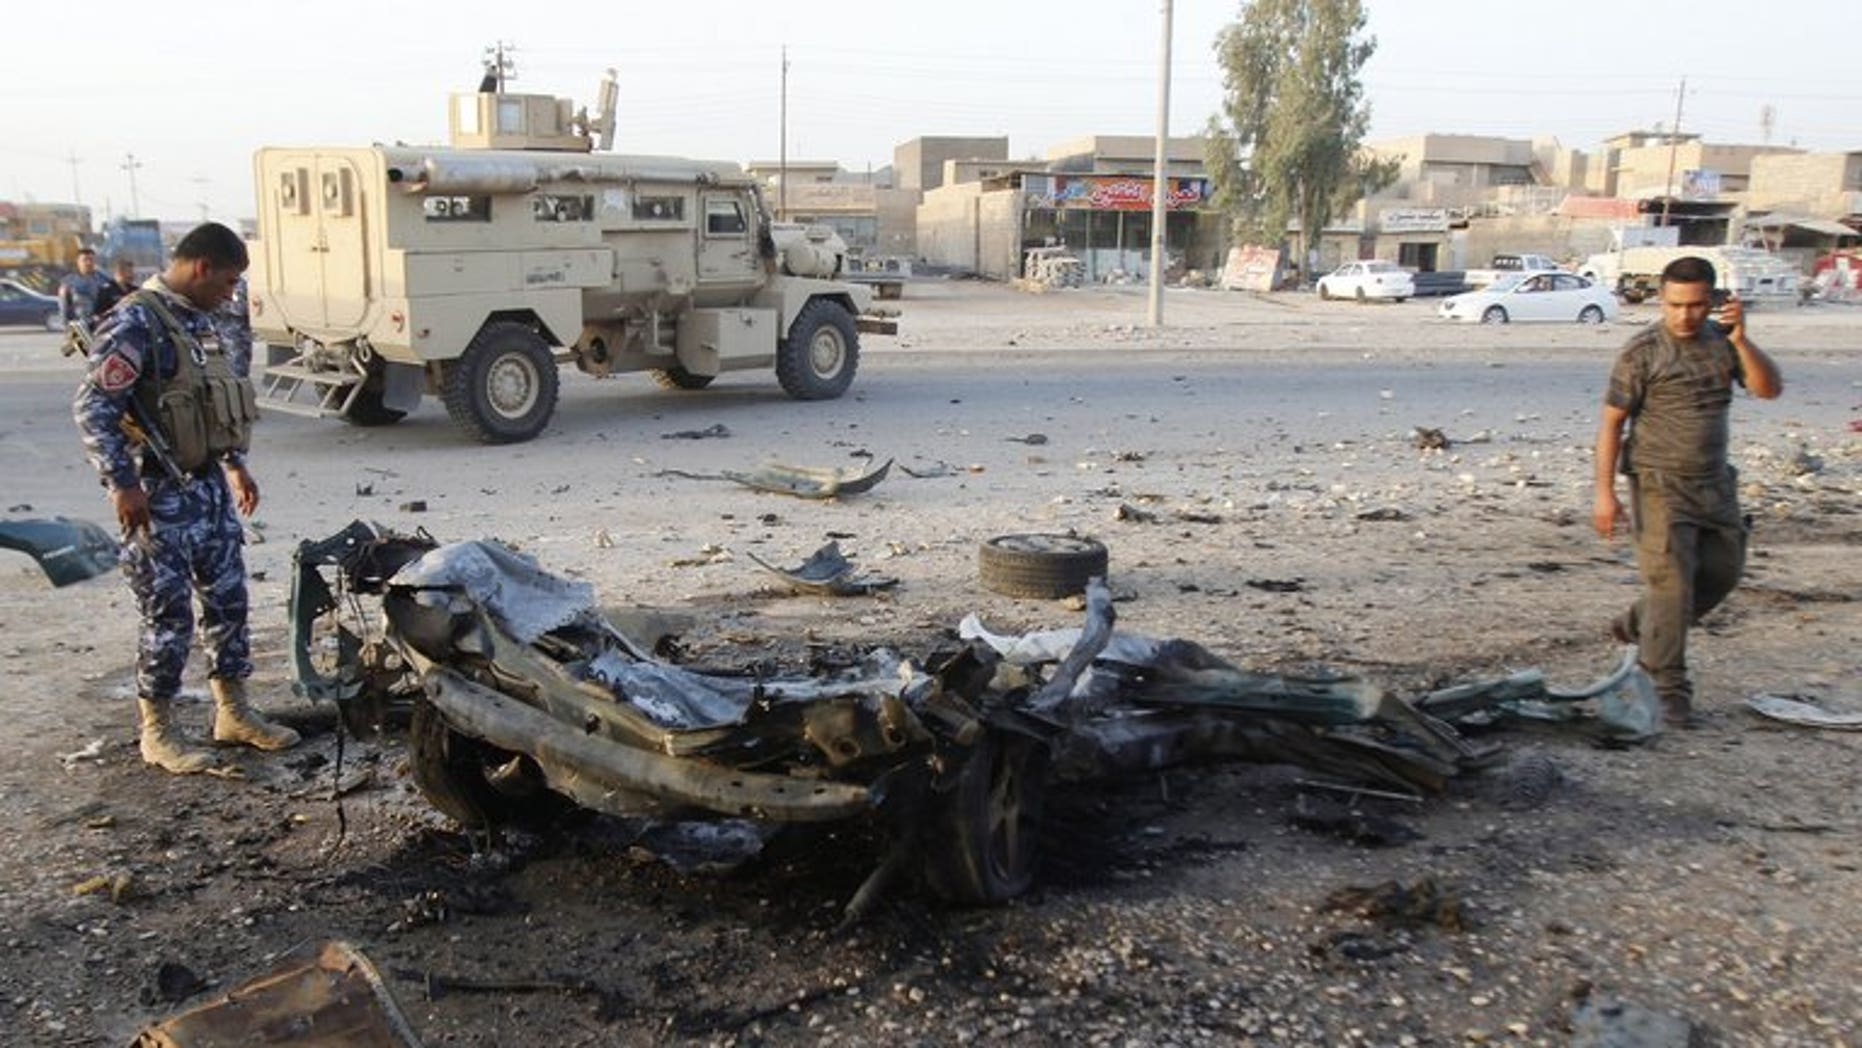 An Iraqi soldier (L) inspects the wreck of a car bomb after it exploded in the military zone of the northern Iraqi city of Kirkuk on July 11, 2013.